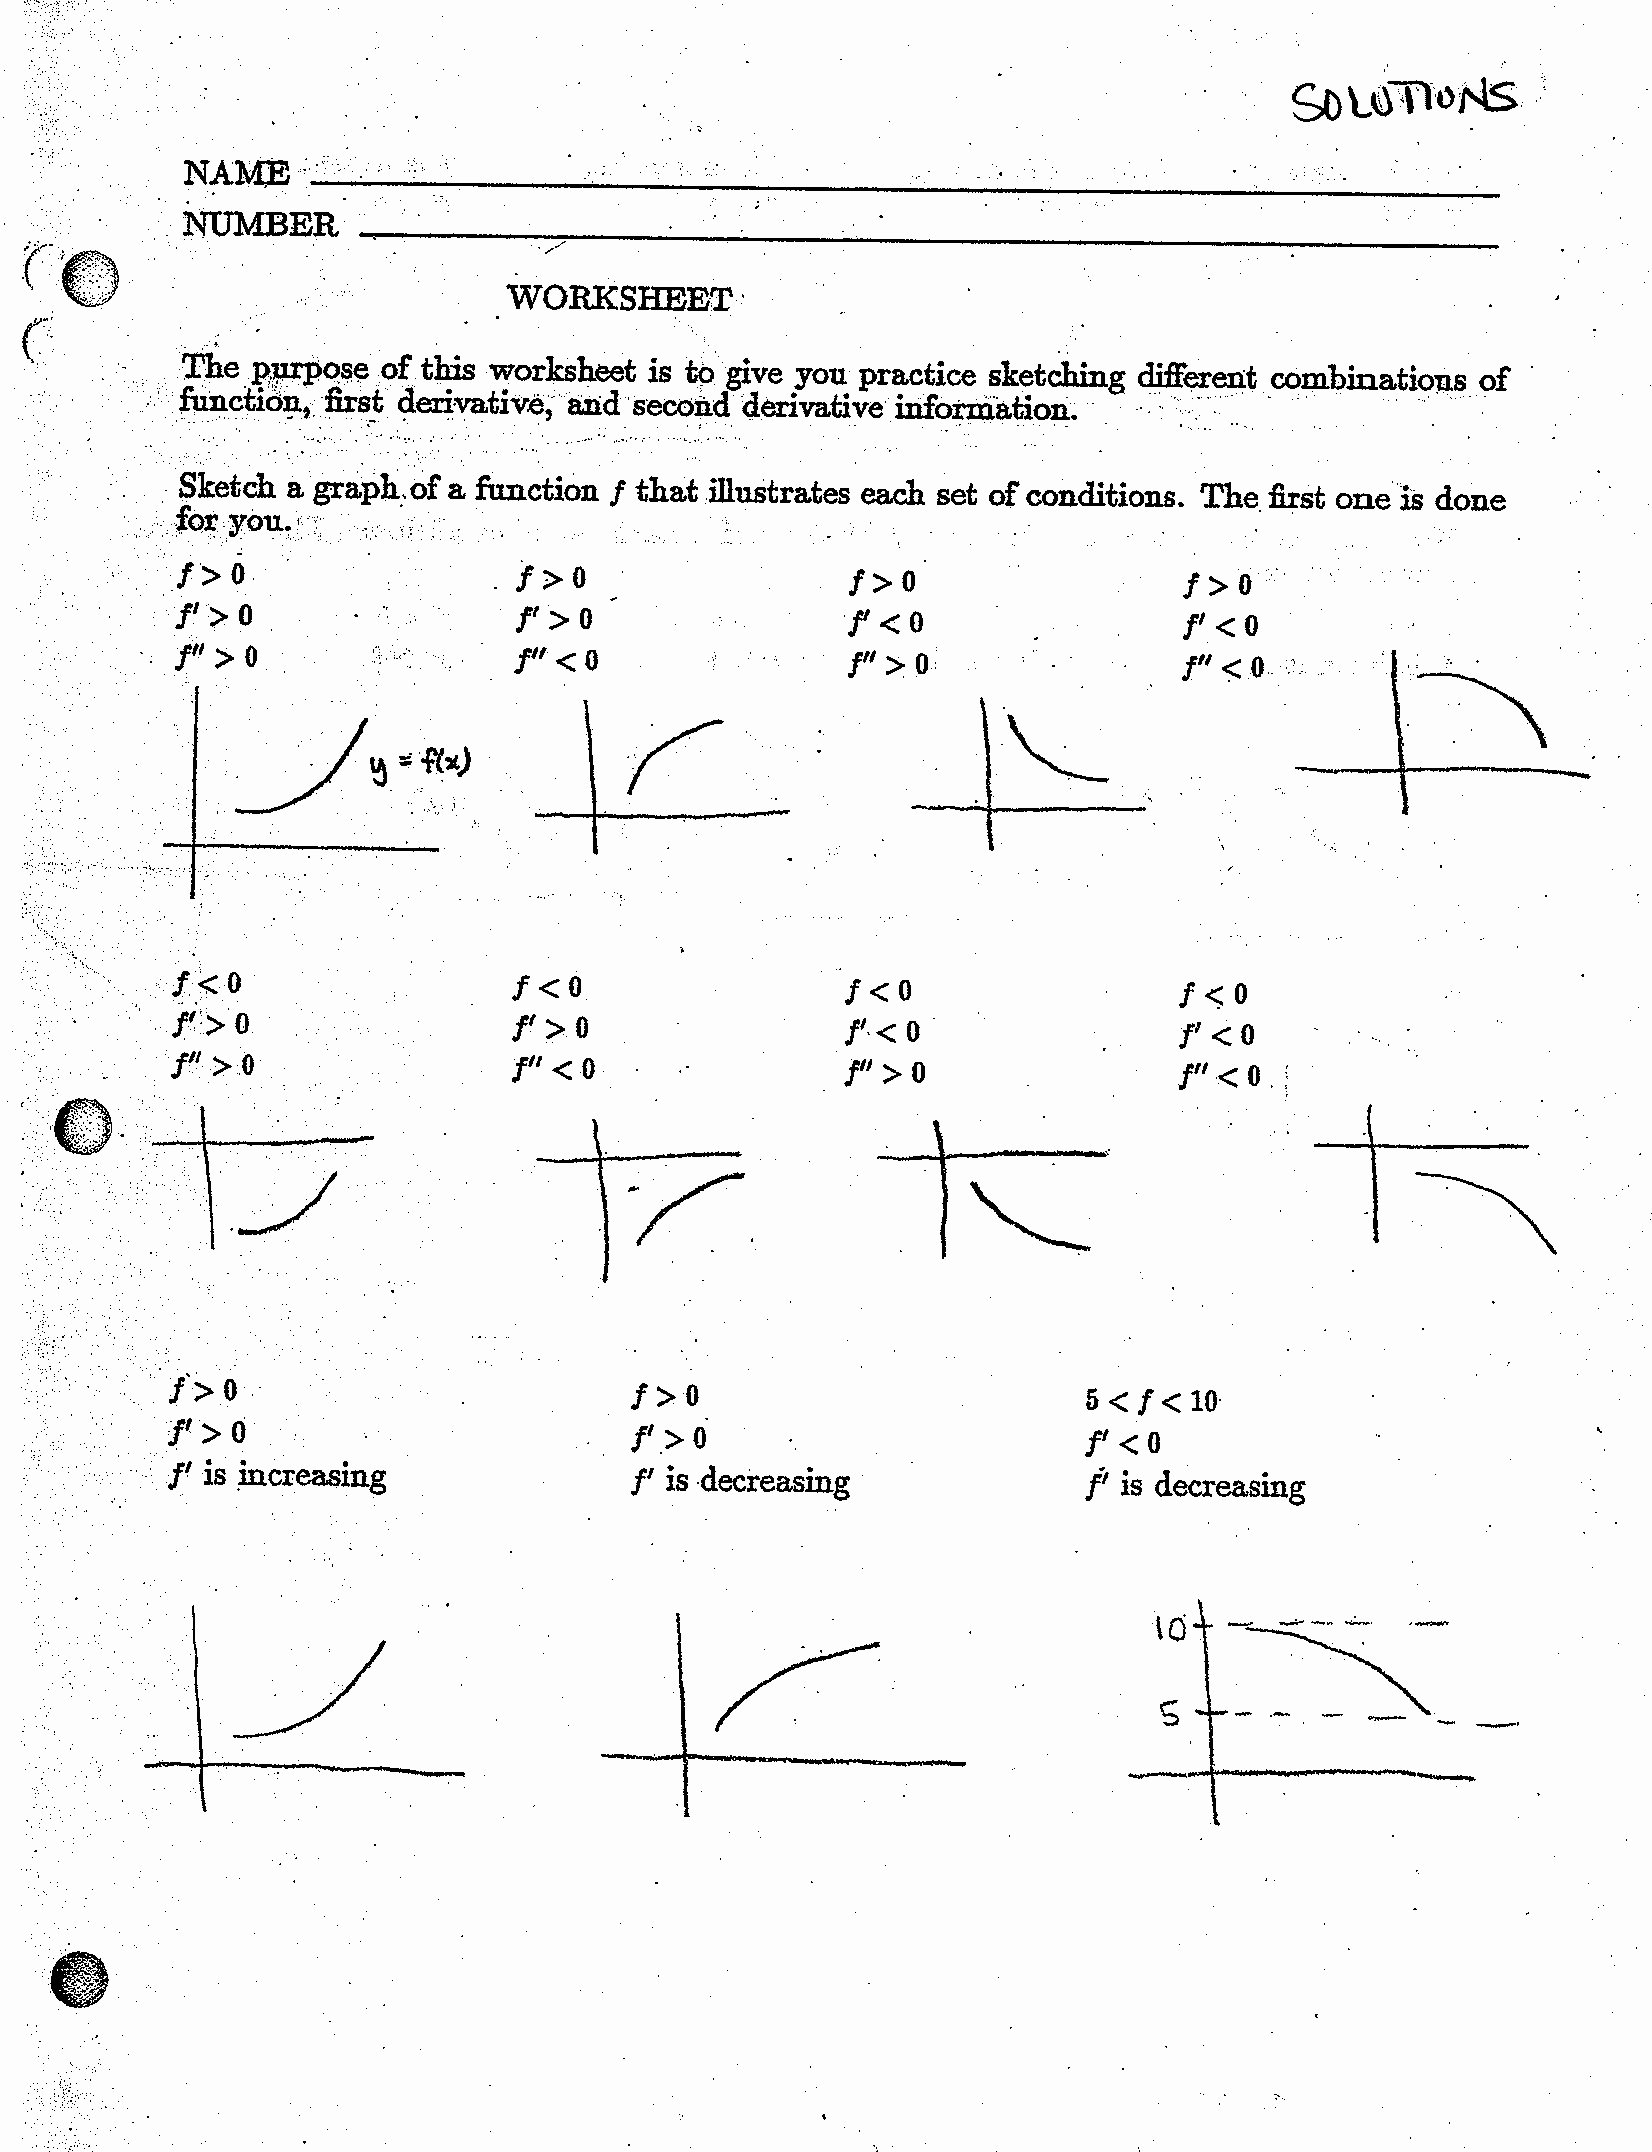 Composite Function Worksheet Answer Key top Posite Function Worksheet